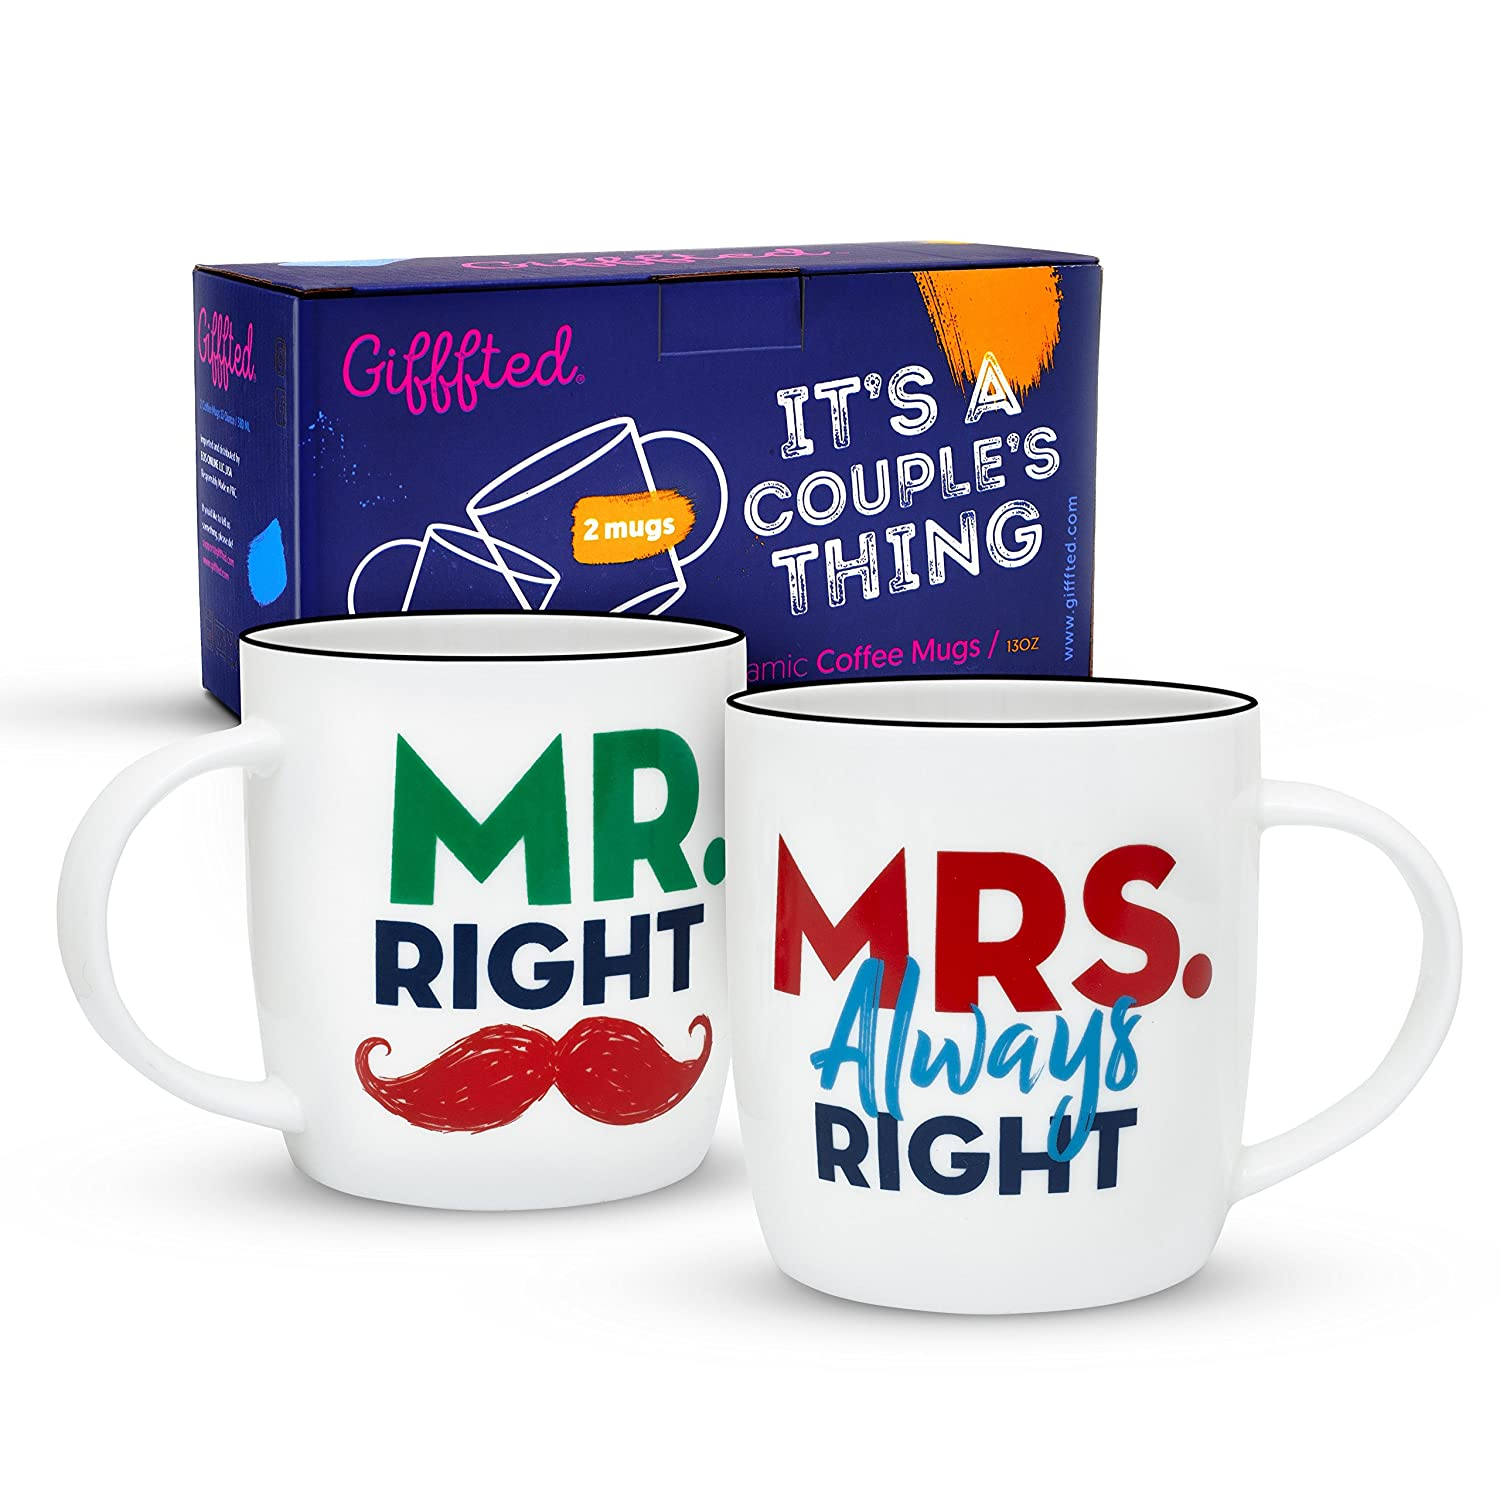 Gifffted Mr Right and Mrs Always Right Coffee Mugs For Couple, Wedding Anniversary Engagement Gifts For Couples, Bride Groom, Husband and Wife, Parents, Him and Her, 380 ML, Set of 2 HS mugs for couples